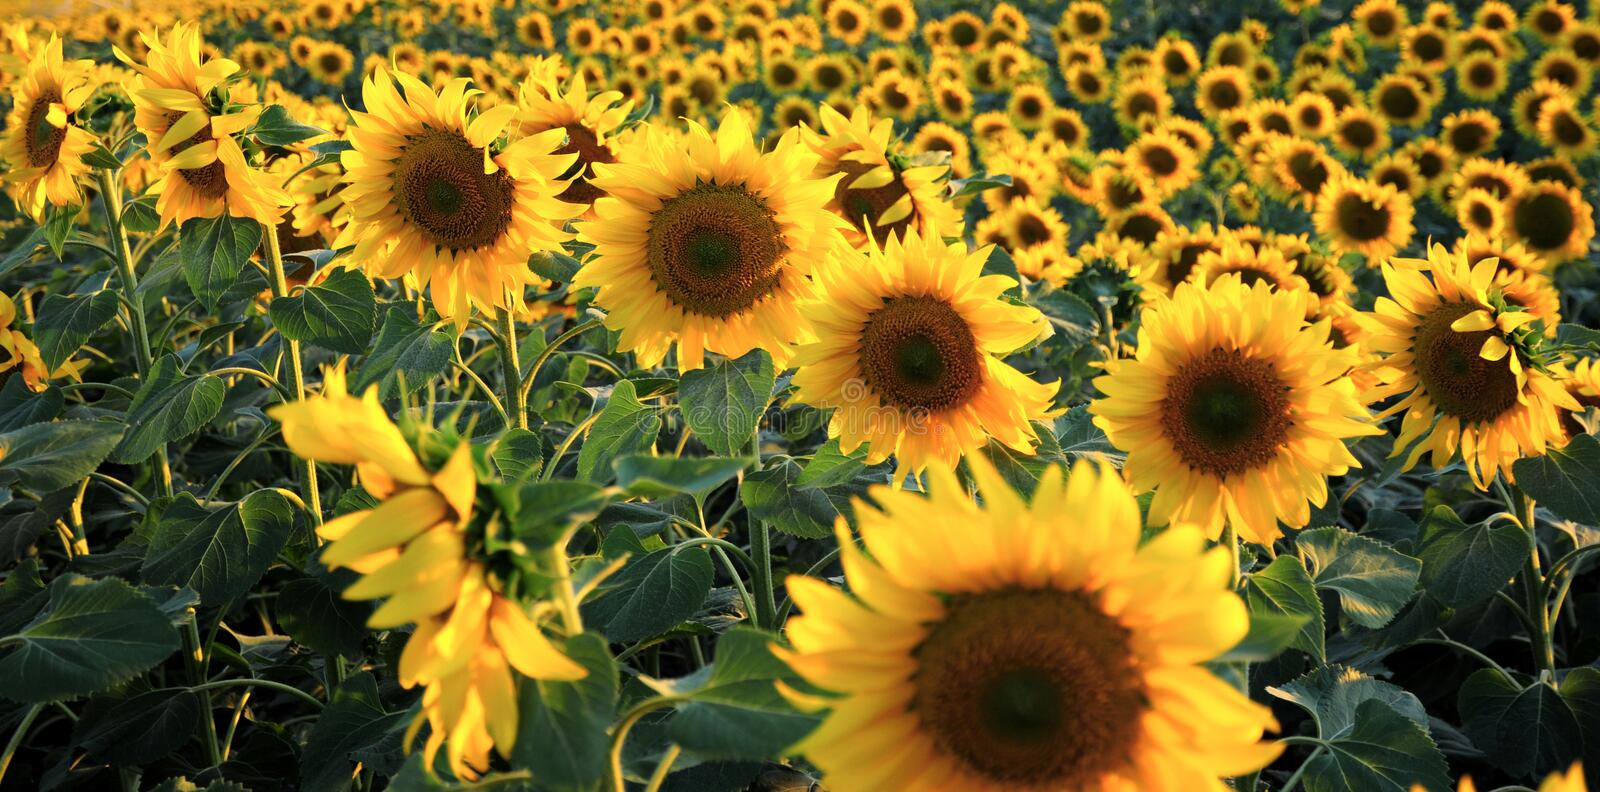 Sun flowers stock images